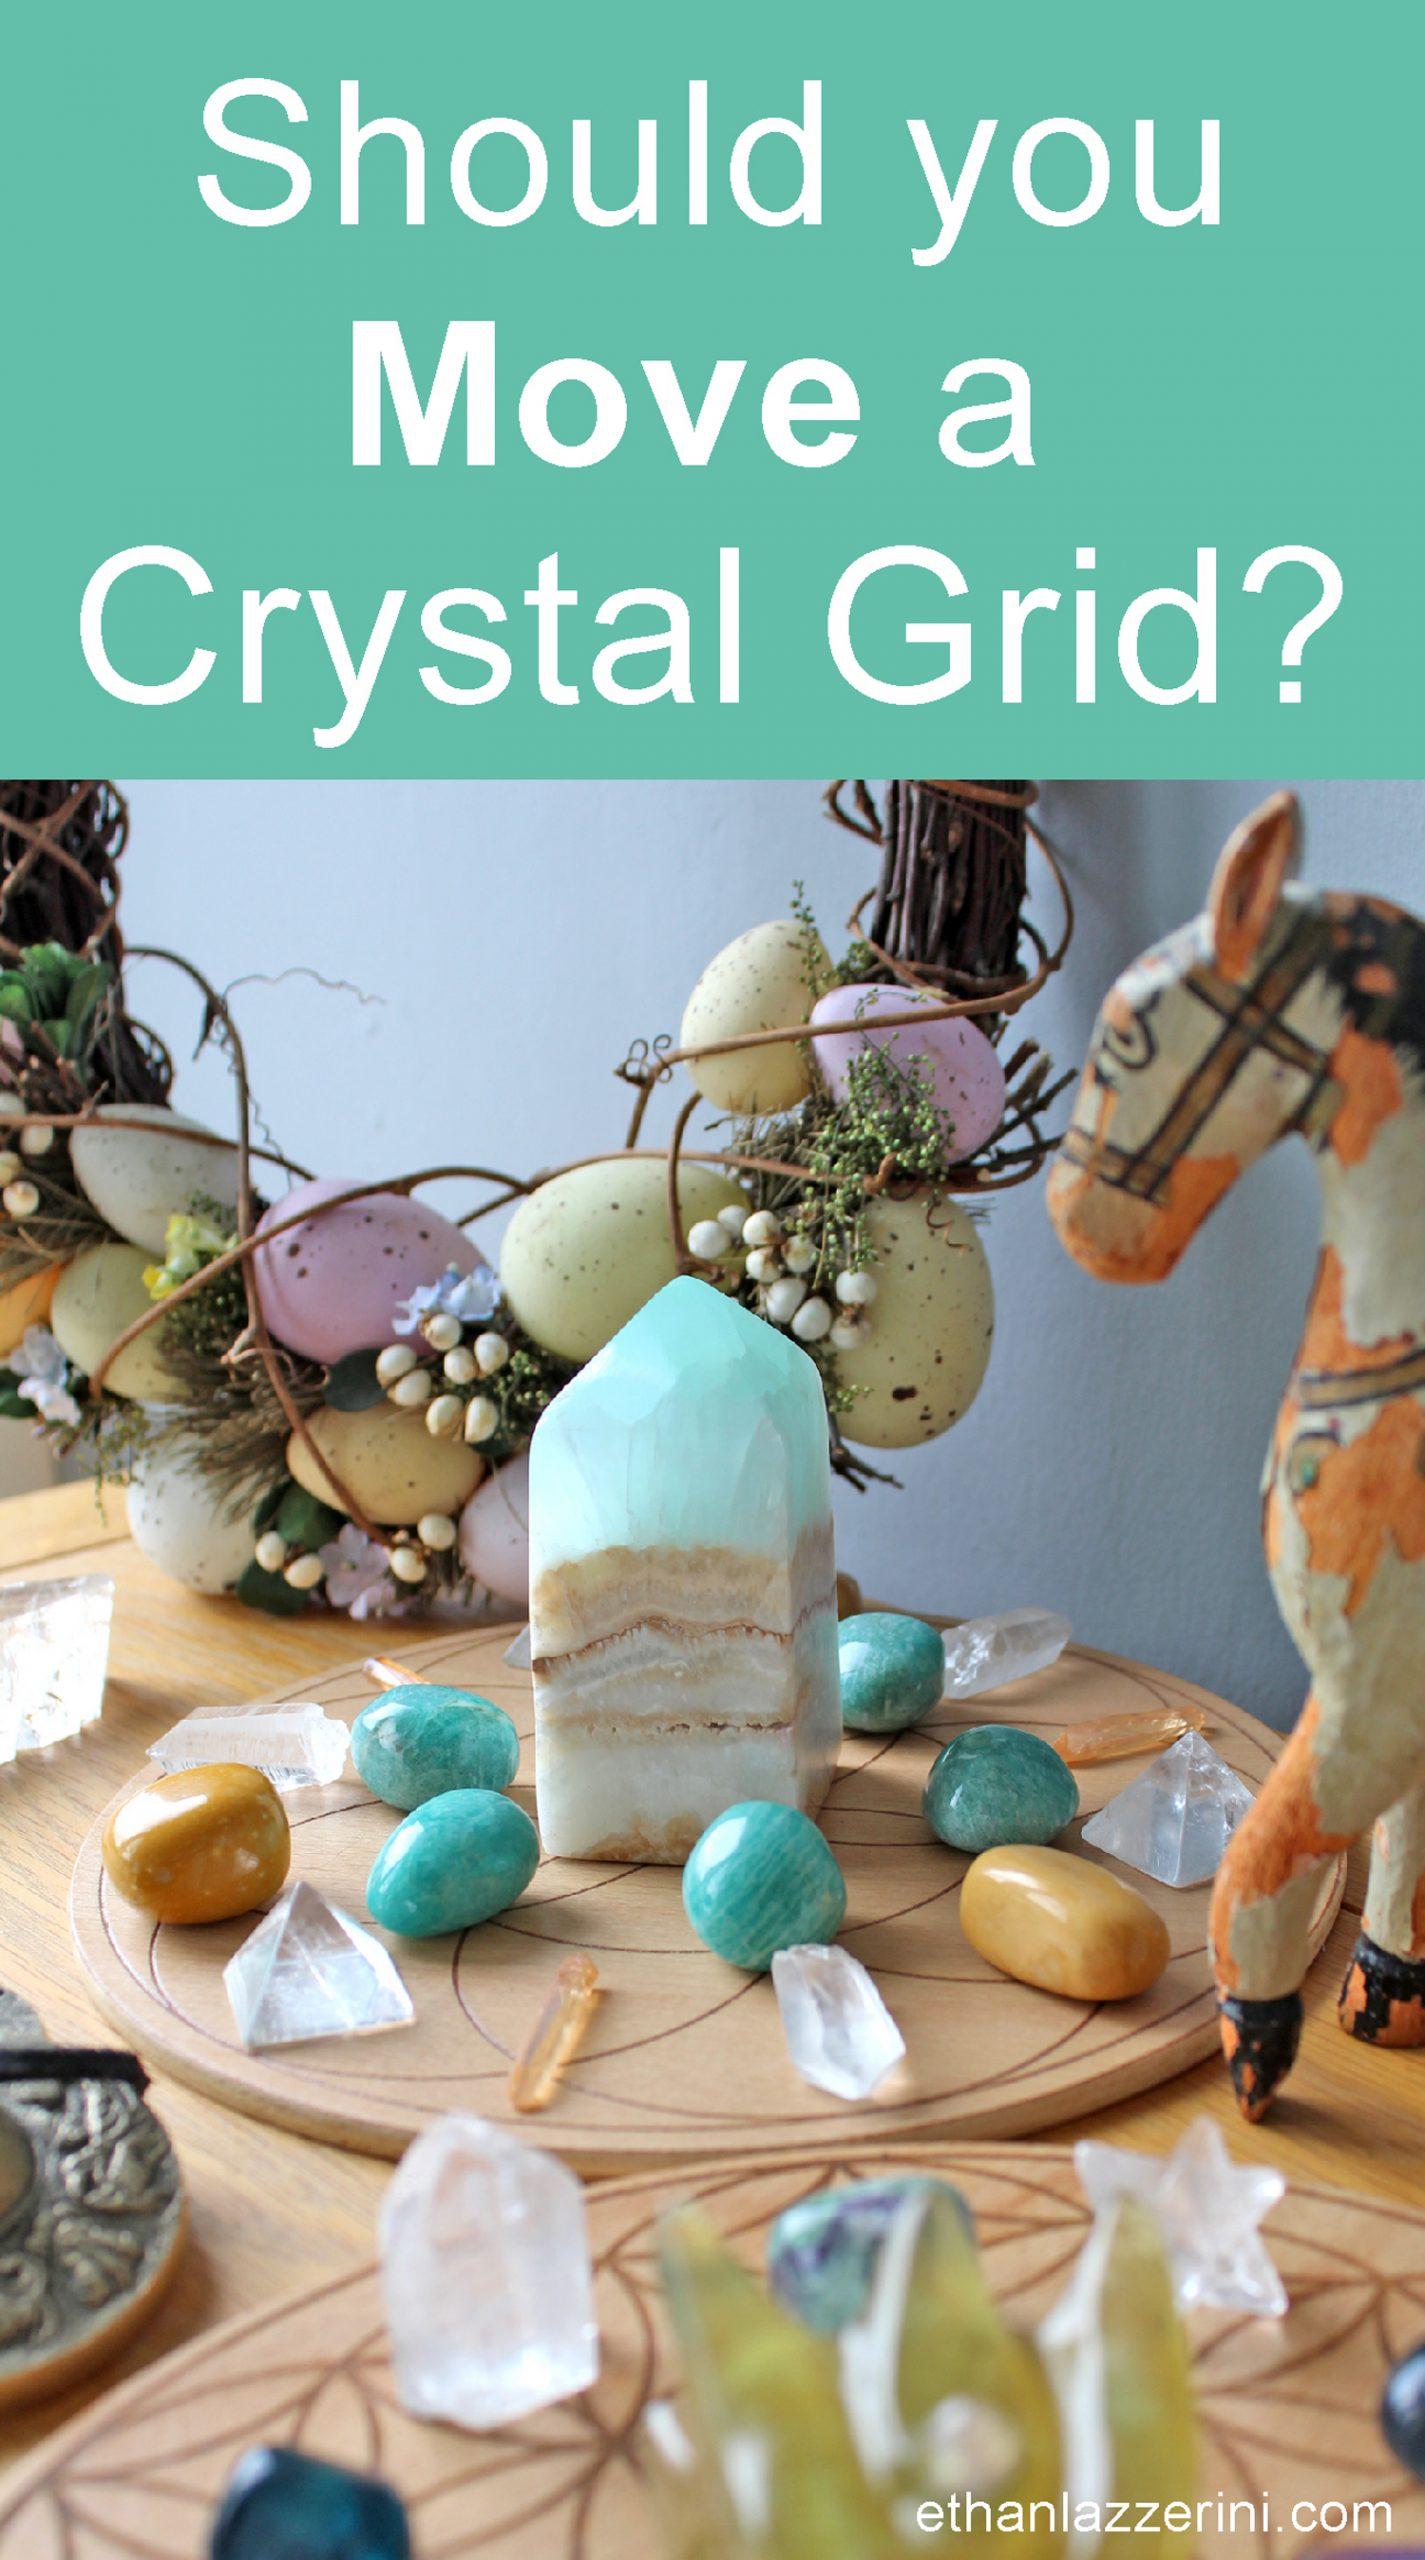 Colourful crystal grid. Text says should you move a crystal grid?